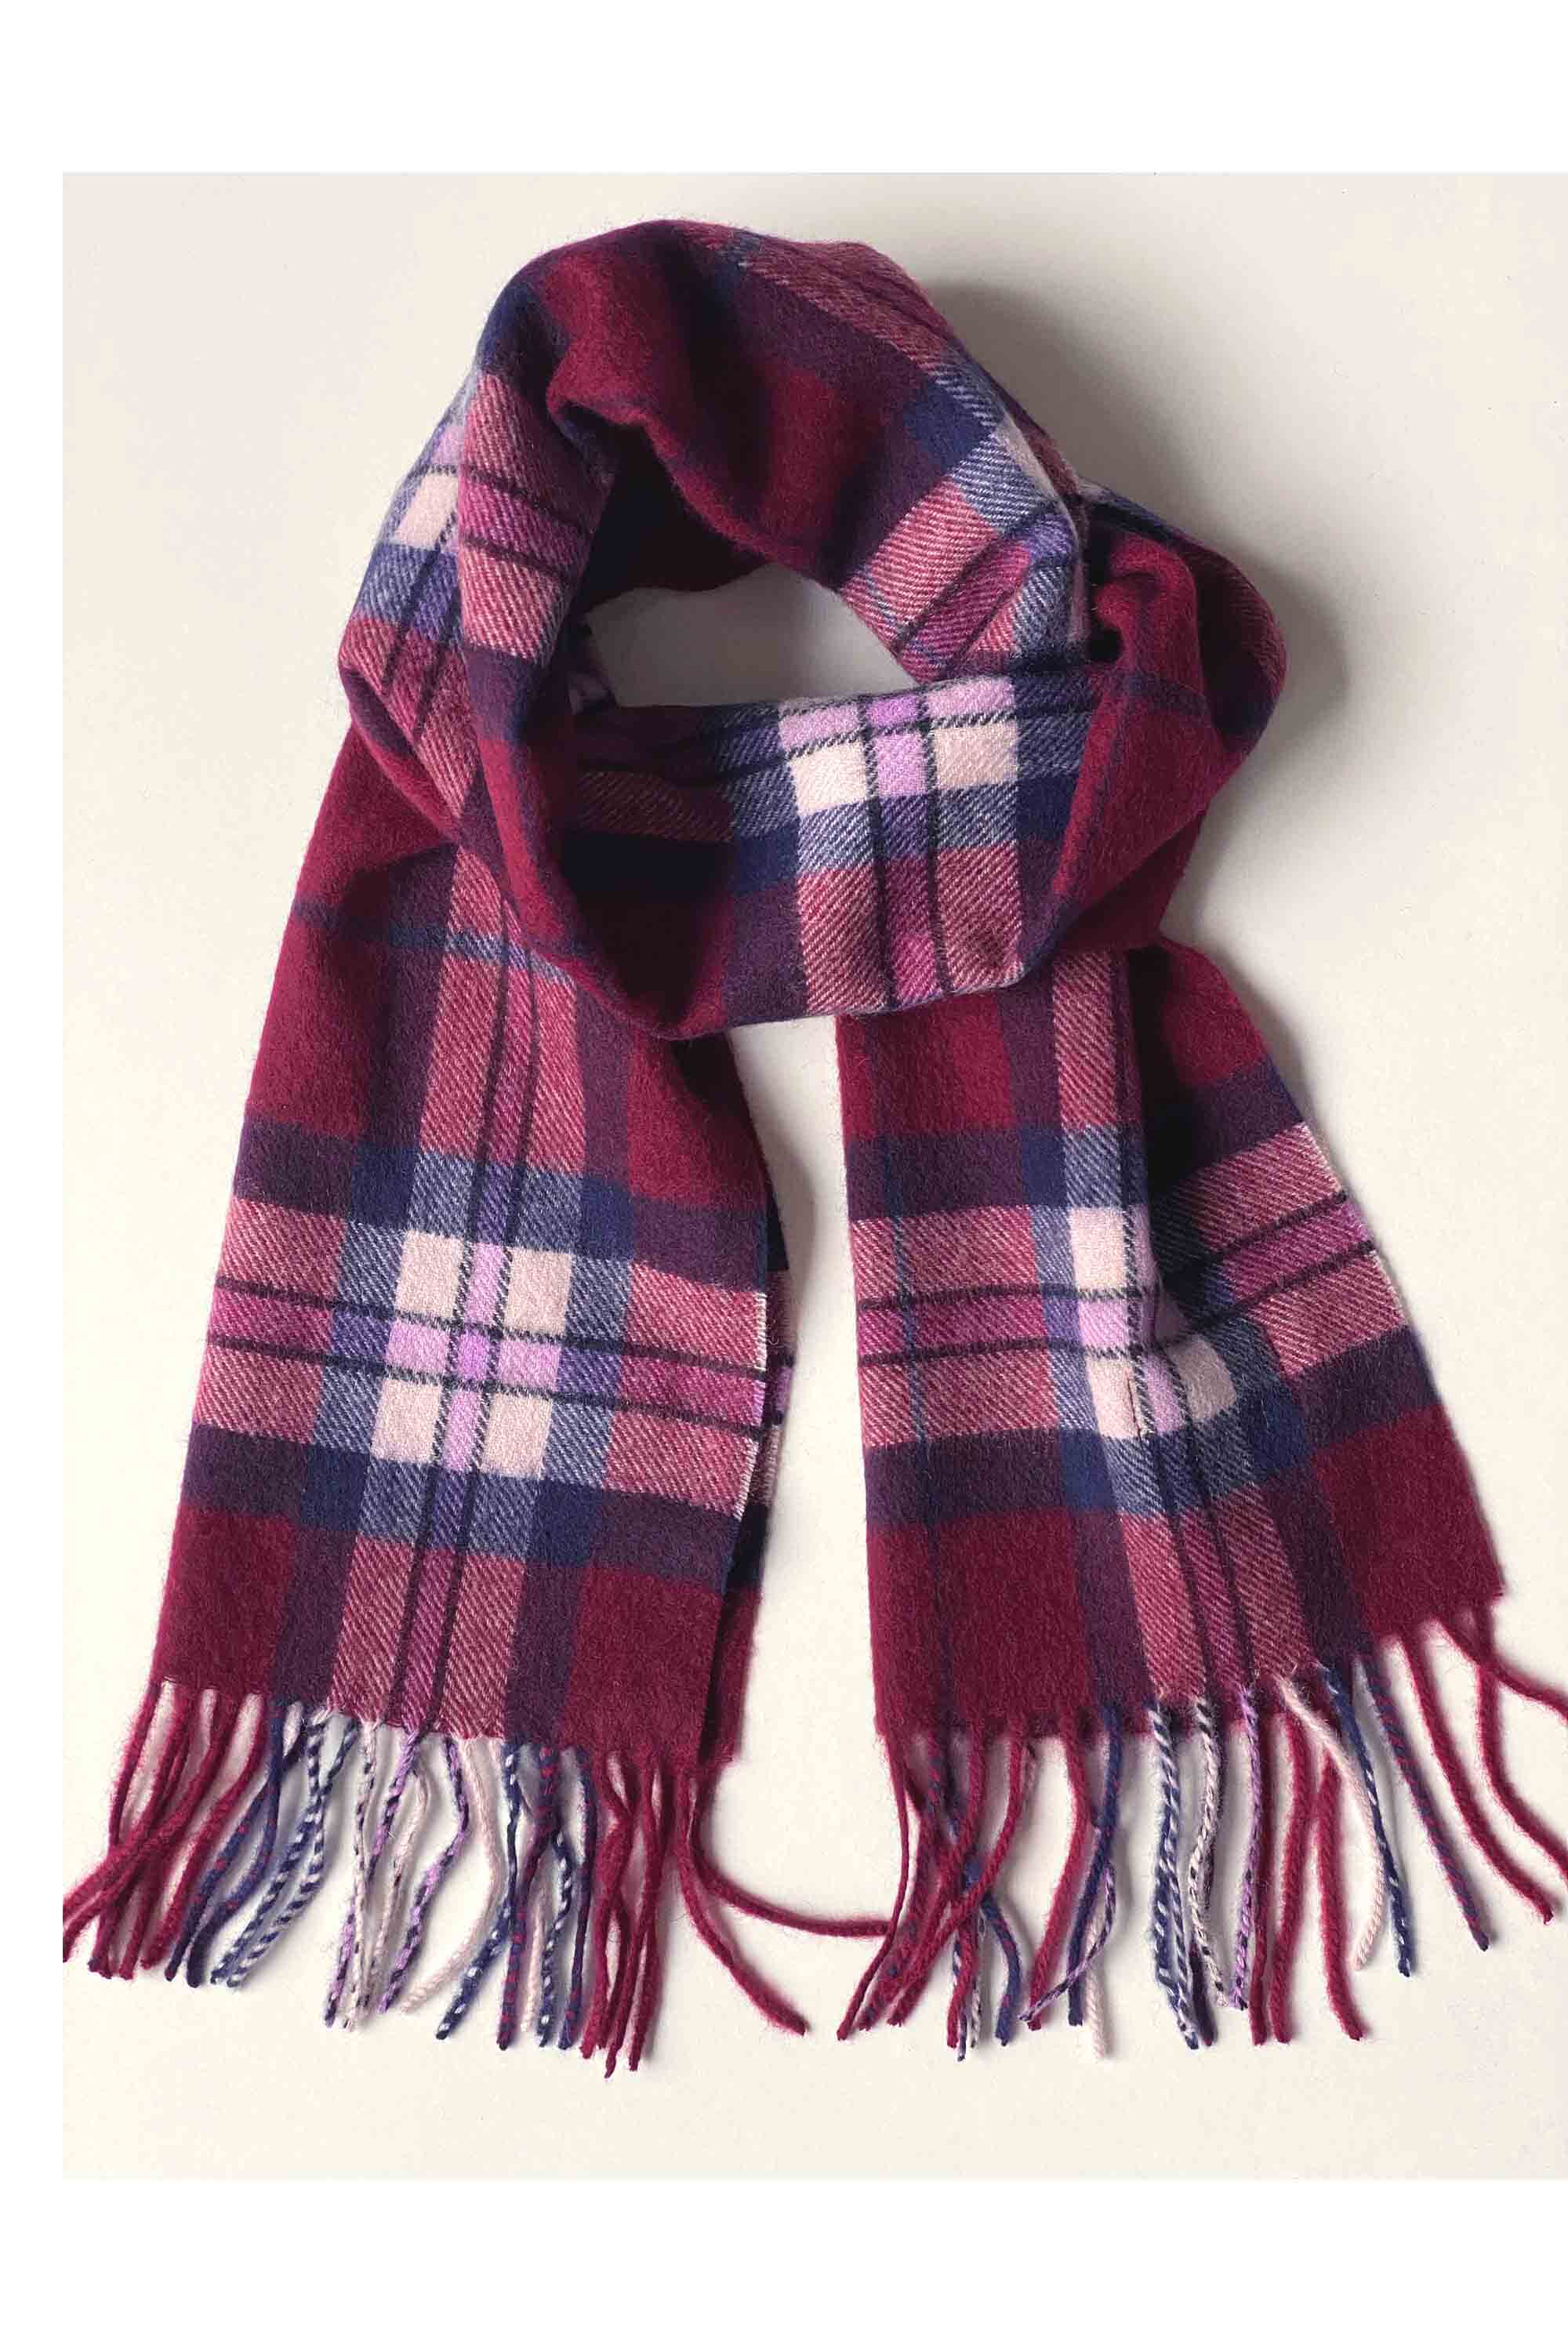 100% pure cashmere burgundy check tartan scarf for men and women unisex.